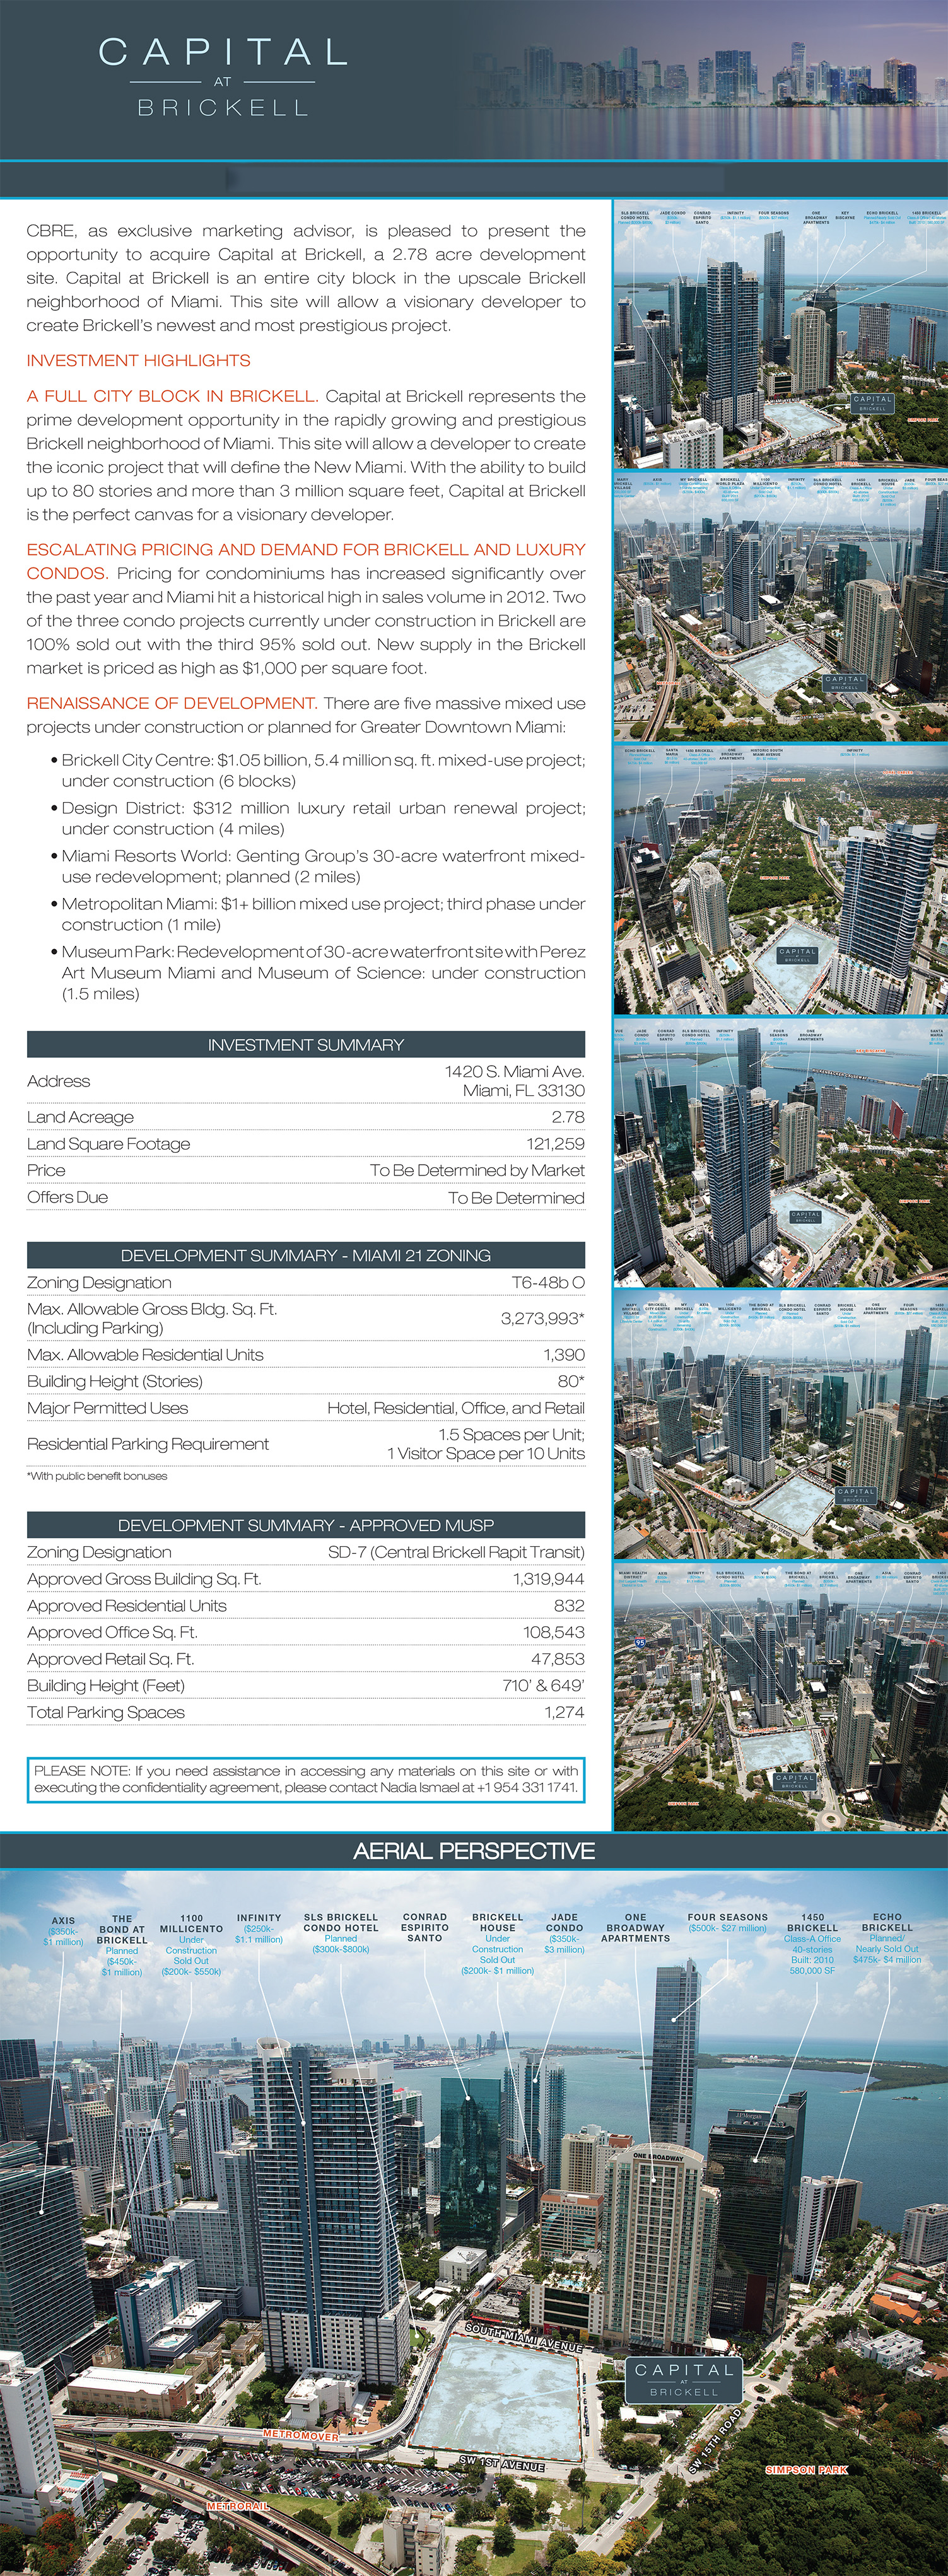 The great new world discussion thread page 103 - This Property Will Probably Sell Soon As It Is One Of The Last Large Parcels Of Land Left In The Brickell District With Close Access To Metromover